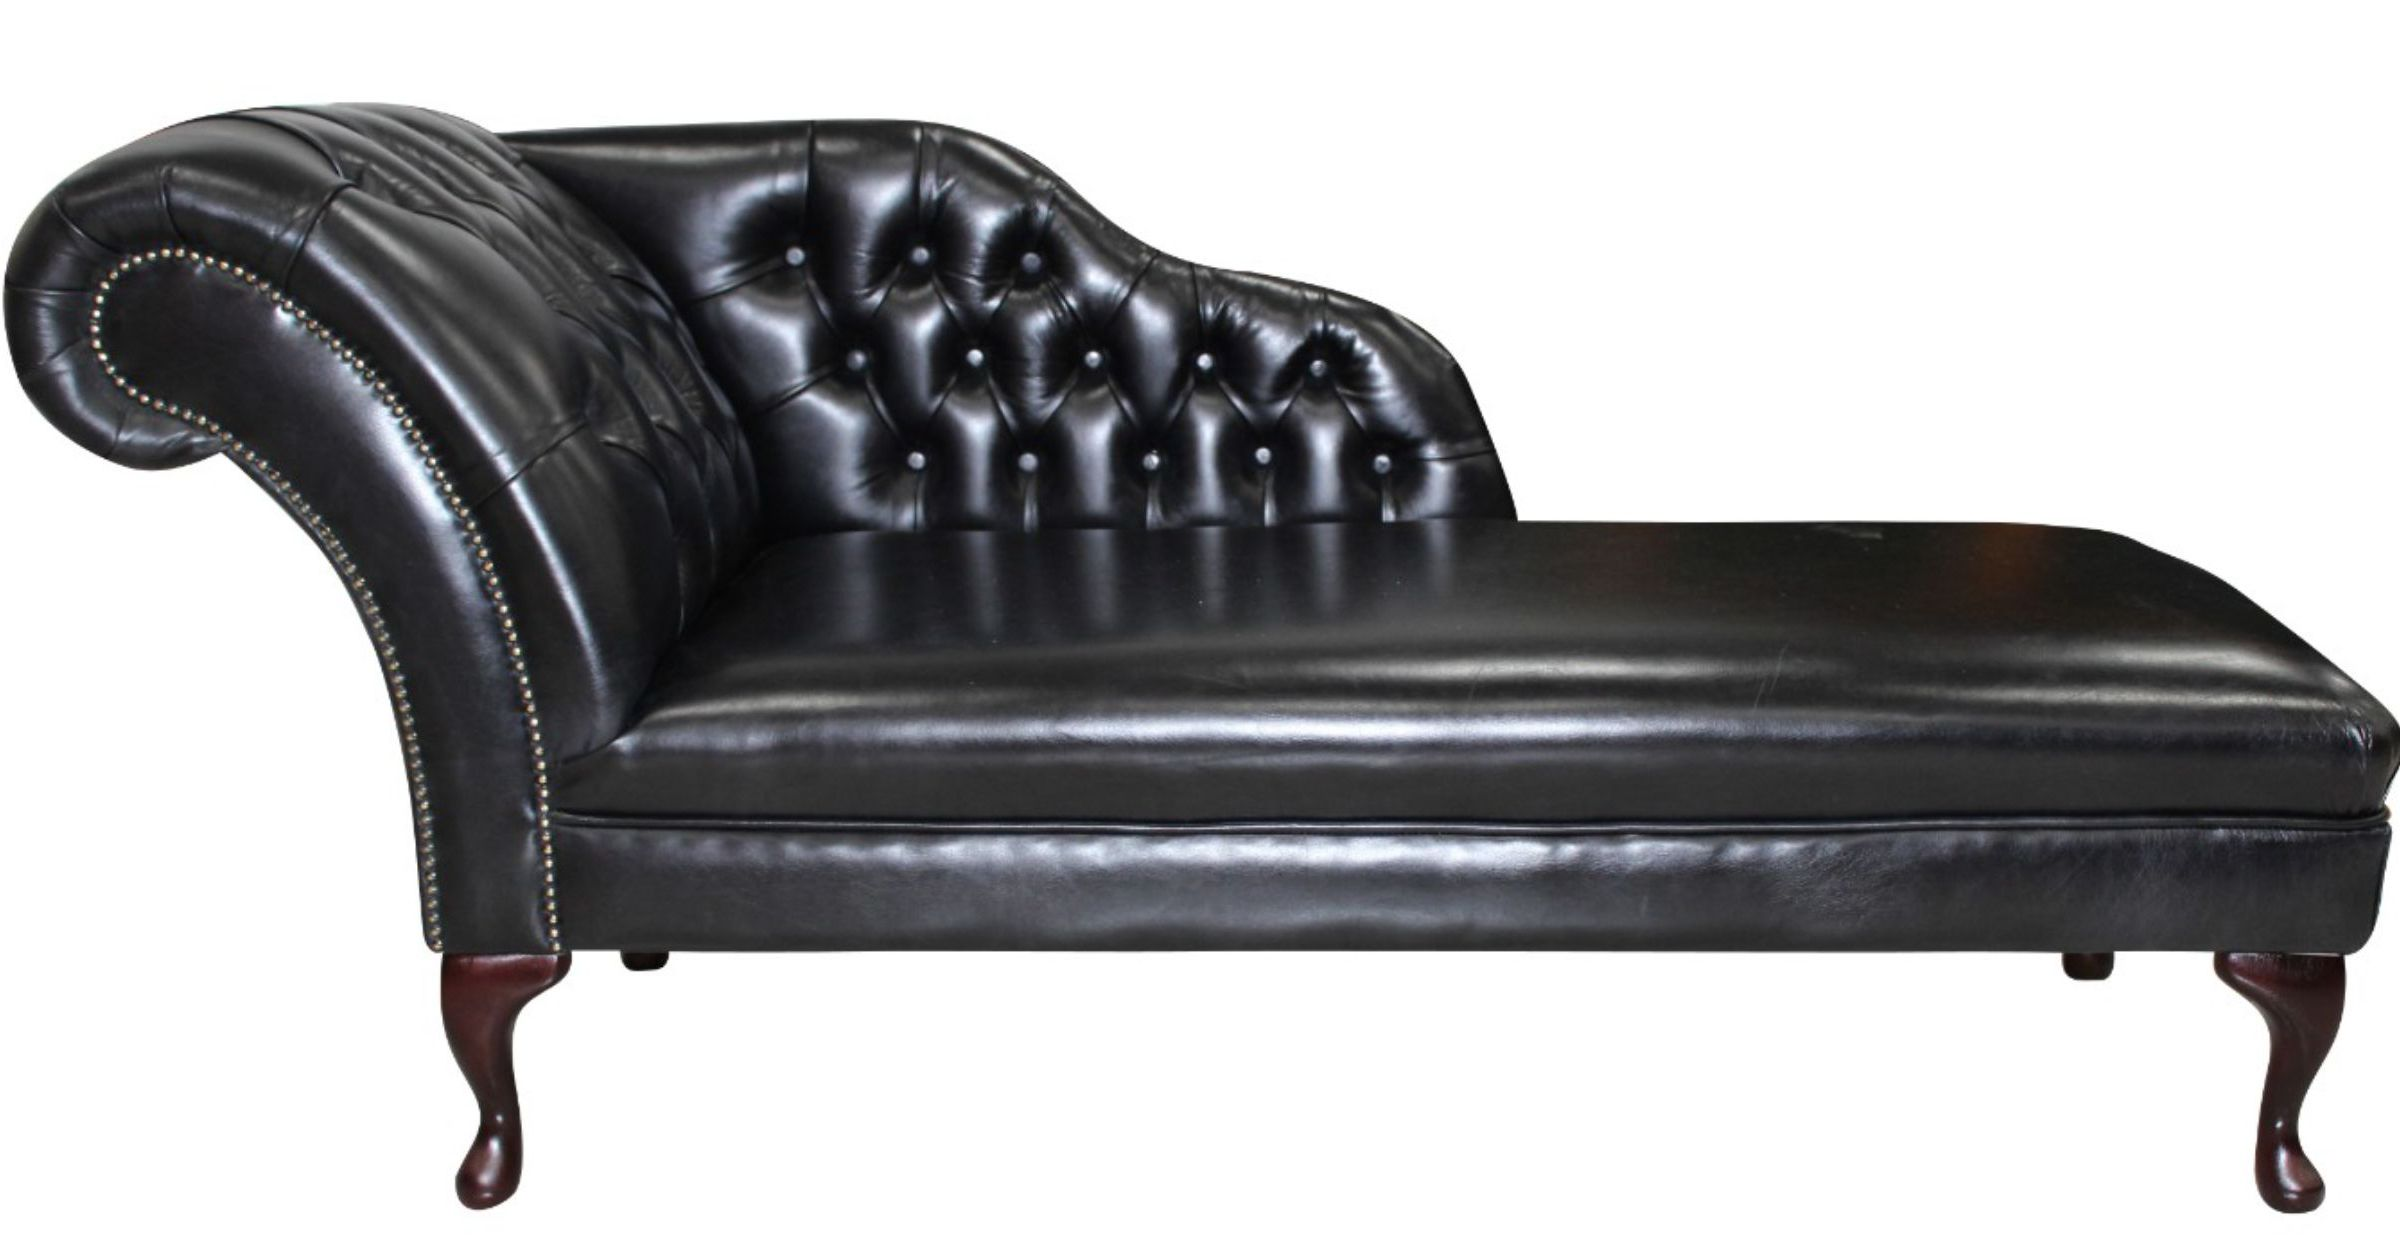 Chesterfield leather chaise lounge day bed designersofas4u for Chaise leather lounge